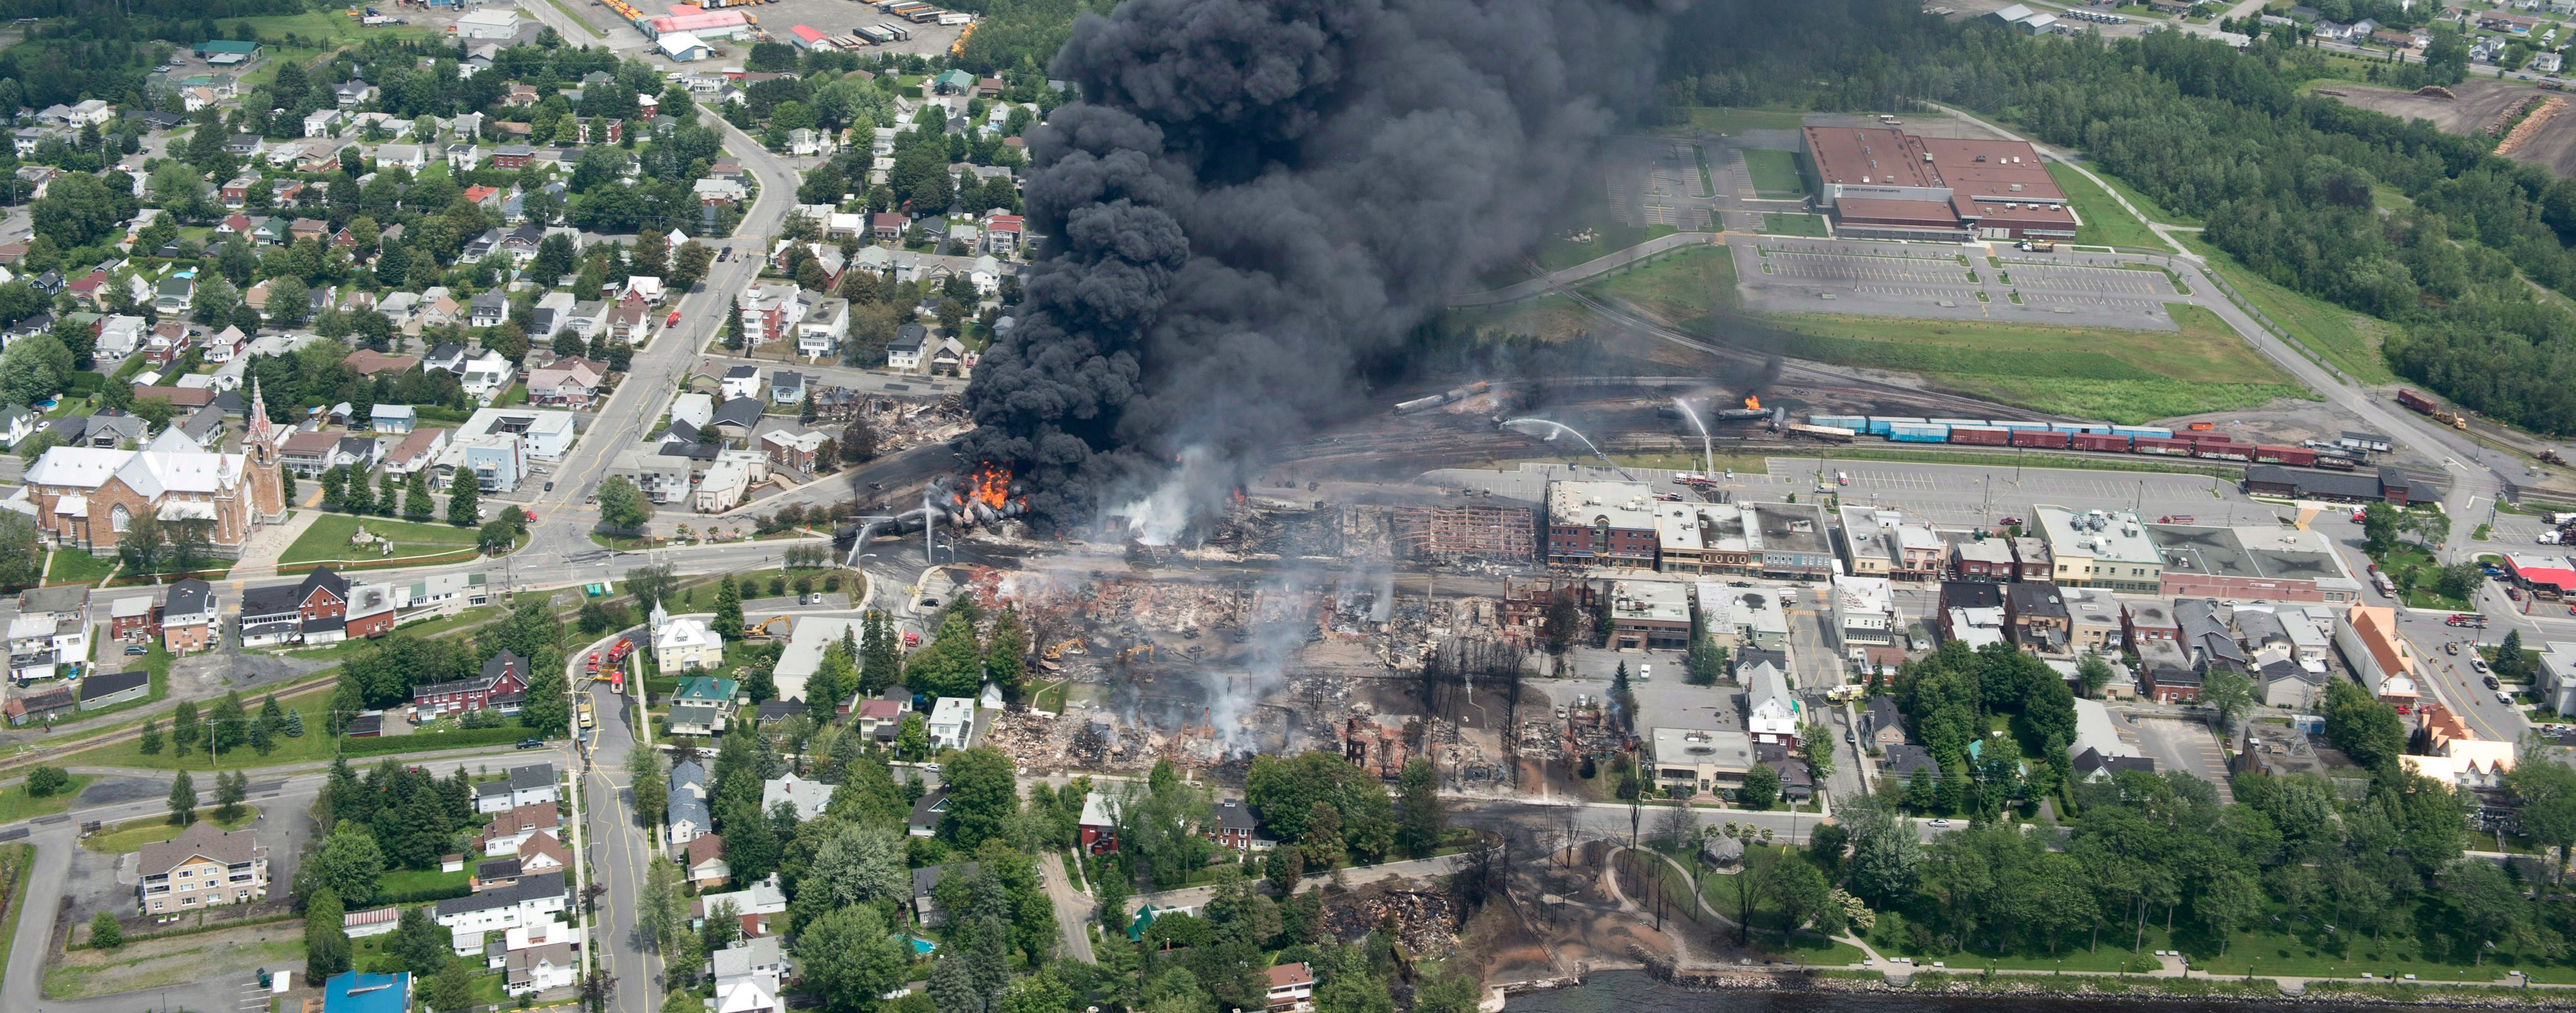 Lac Megantic disaster site